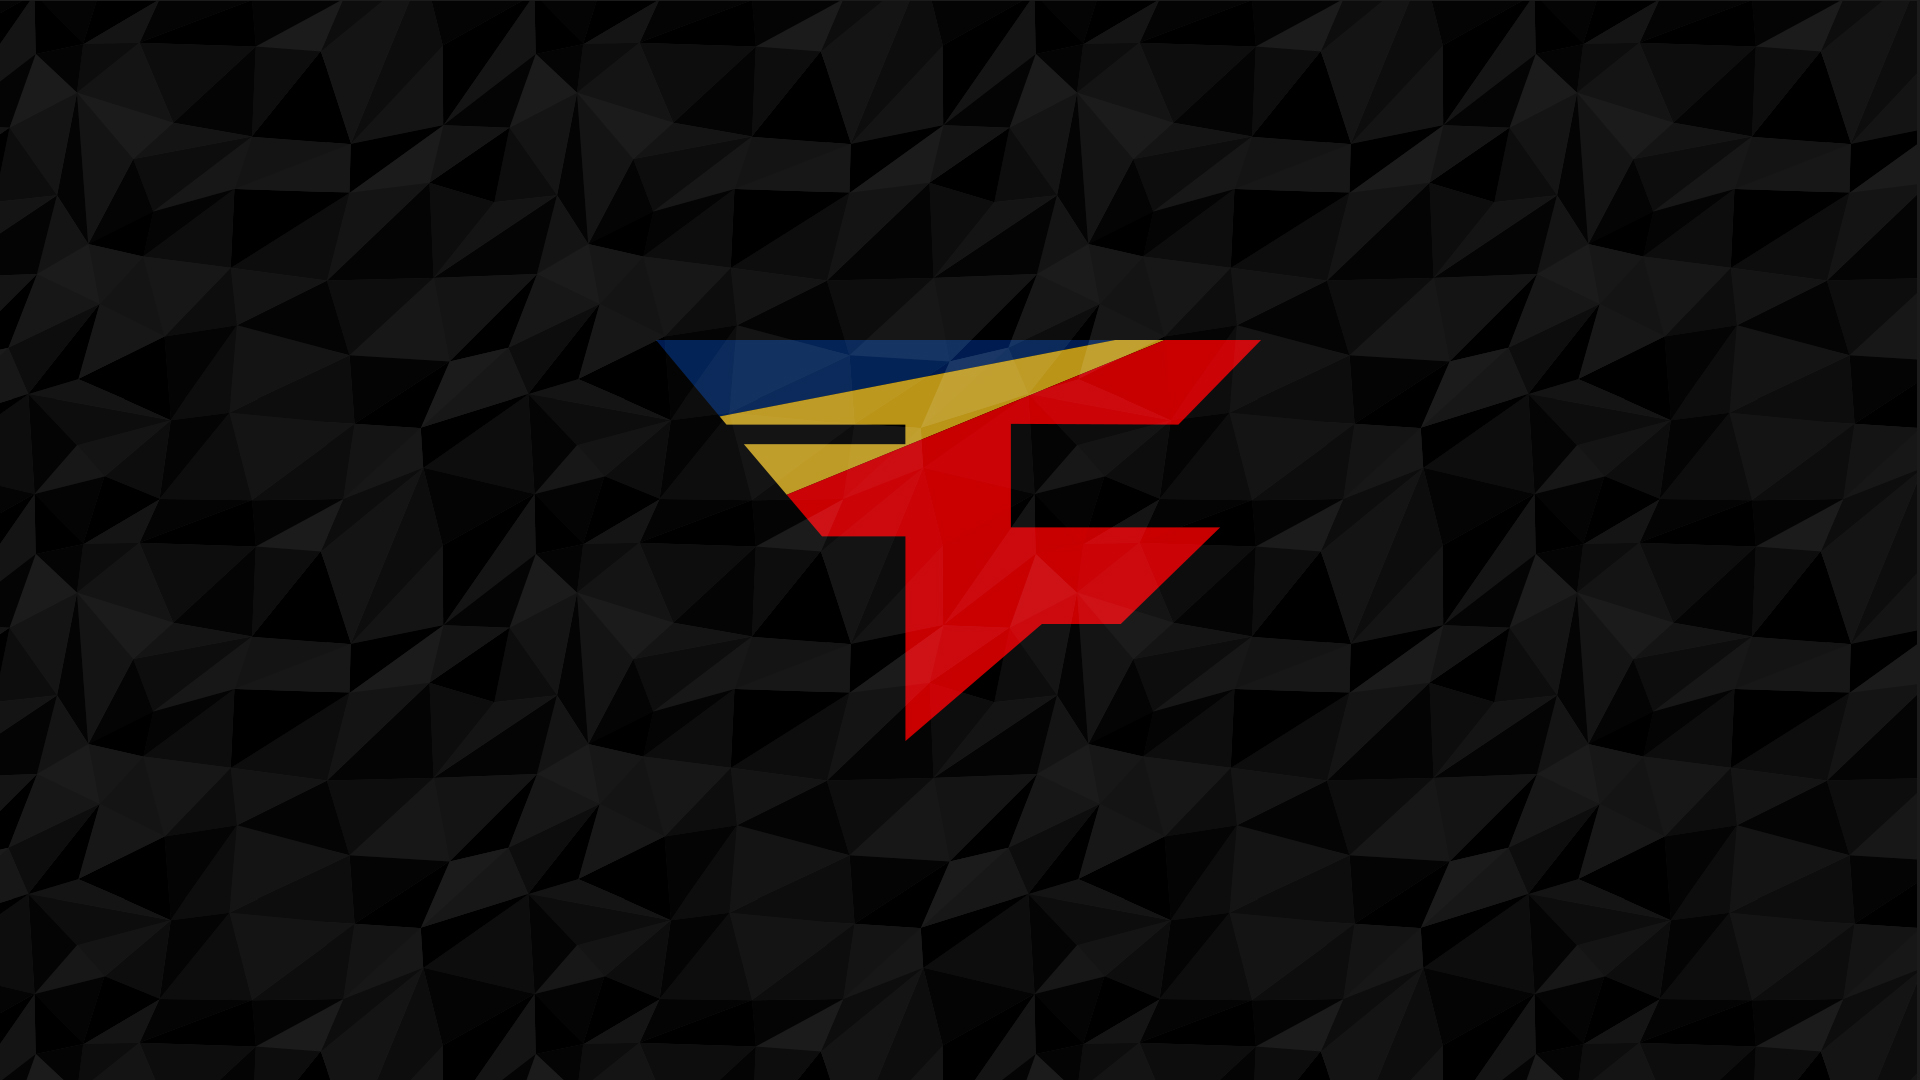 Fnatic Wallpaper Iphone Steam Community Guide Wallpapers With Teams Cs Go